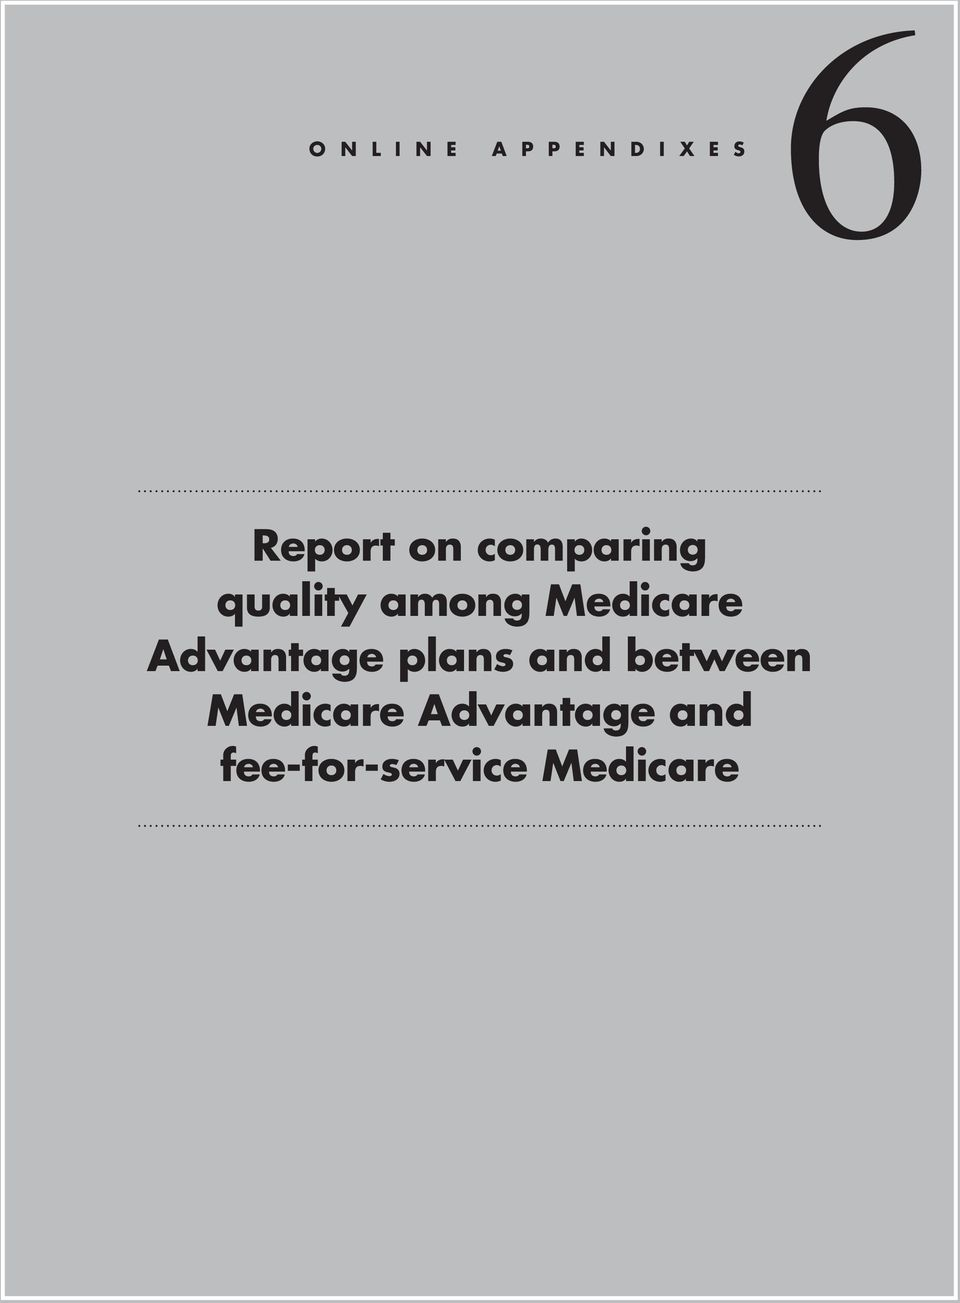 Medicare Advantage plans and between